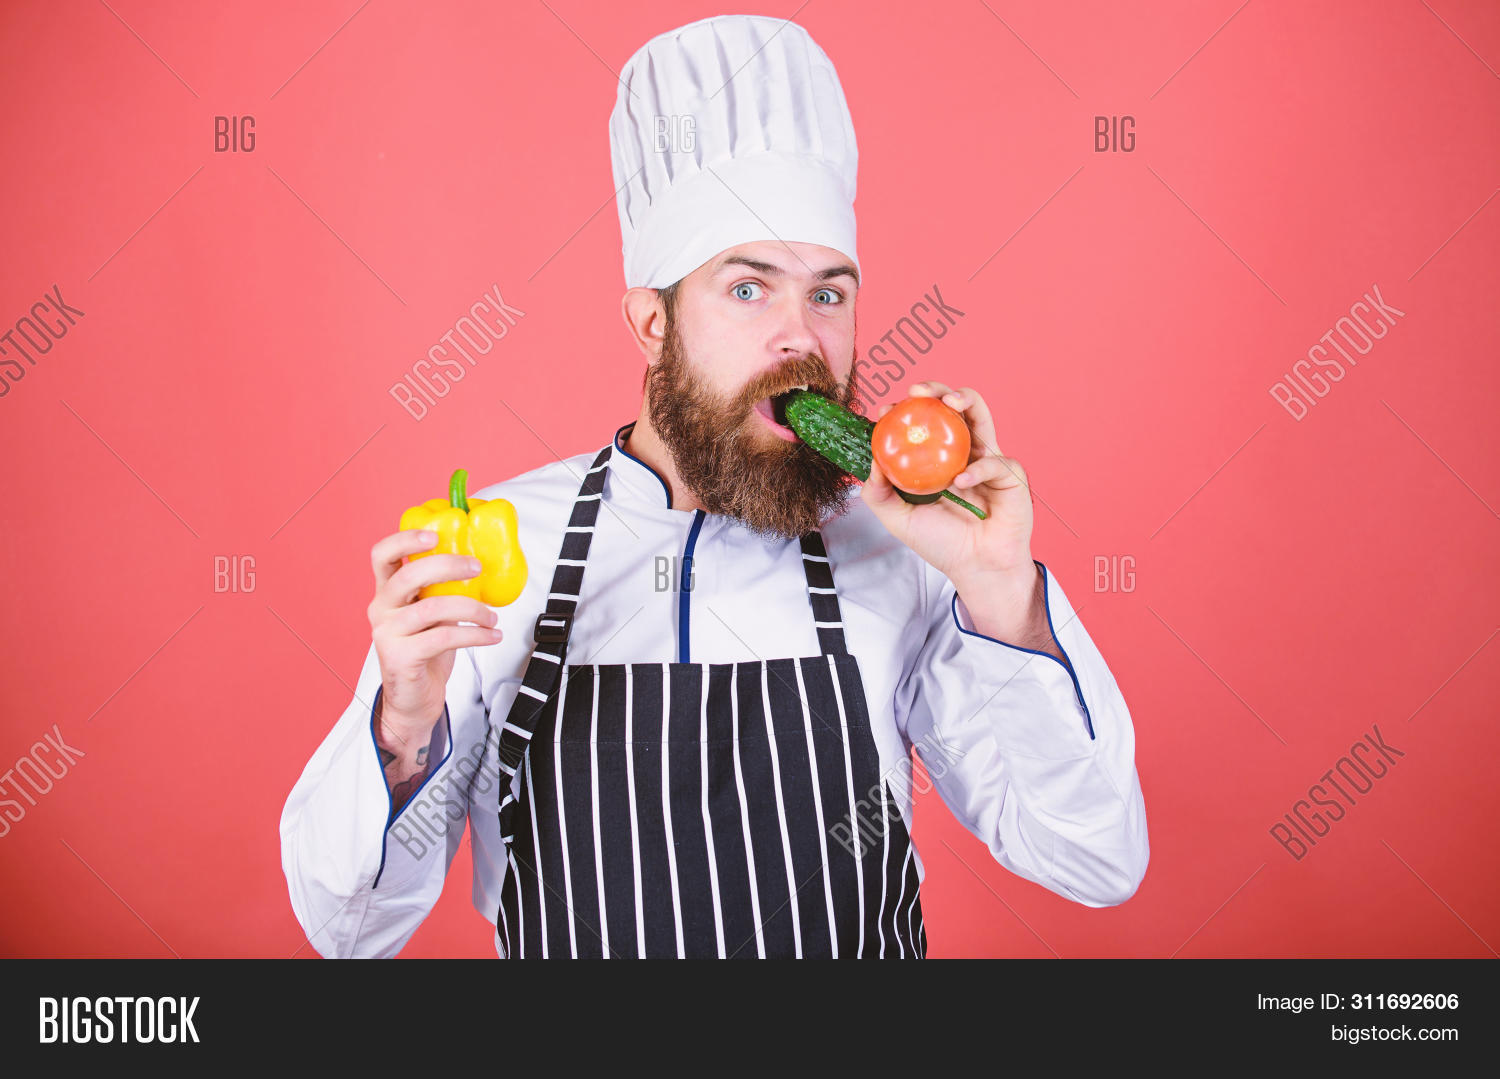 apron,background,buy,cafe,caucasian,chef,chief,choose,concept,cook,cooking,cuisine,culinary,diet,dieting,eat,food,fresh,gourmet,greenery,grocery,hat,health,healthy,hipster,hold,homegrown,lifestyle,man,nutrition,organic,pepper,professional,ration,recipe,red,restaurant,ripe,store,uniform,vegan,vegetable,vegetarian,vitamin